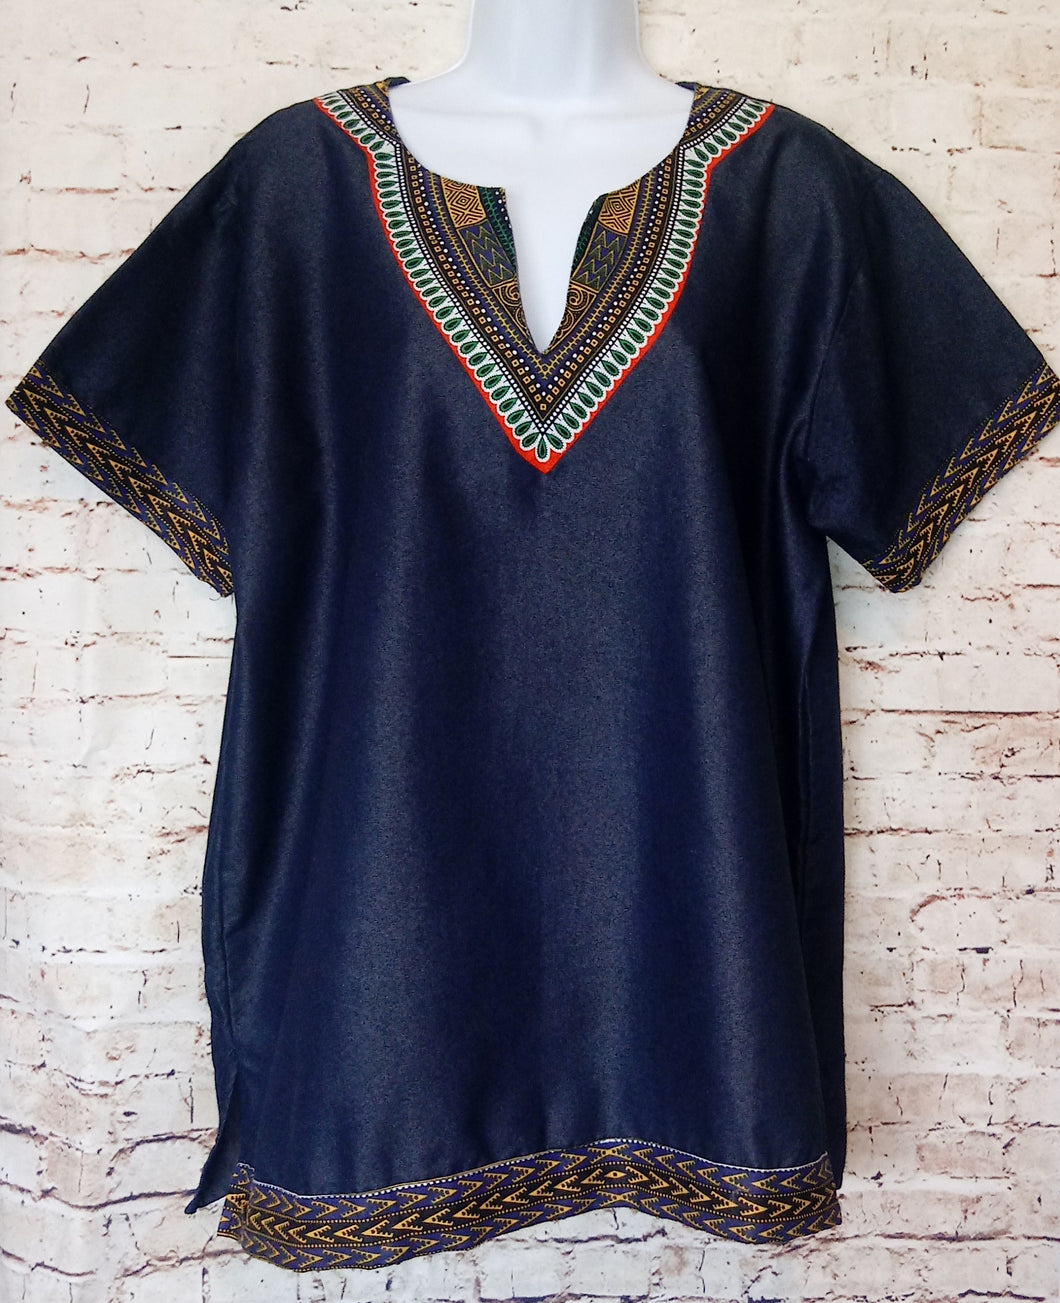 Chambray Tunic Top Size XL - Anna's Armoire